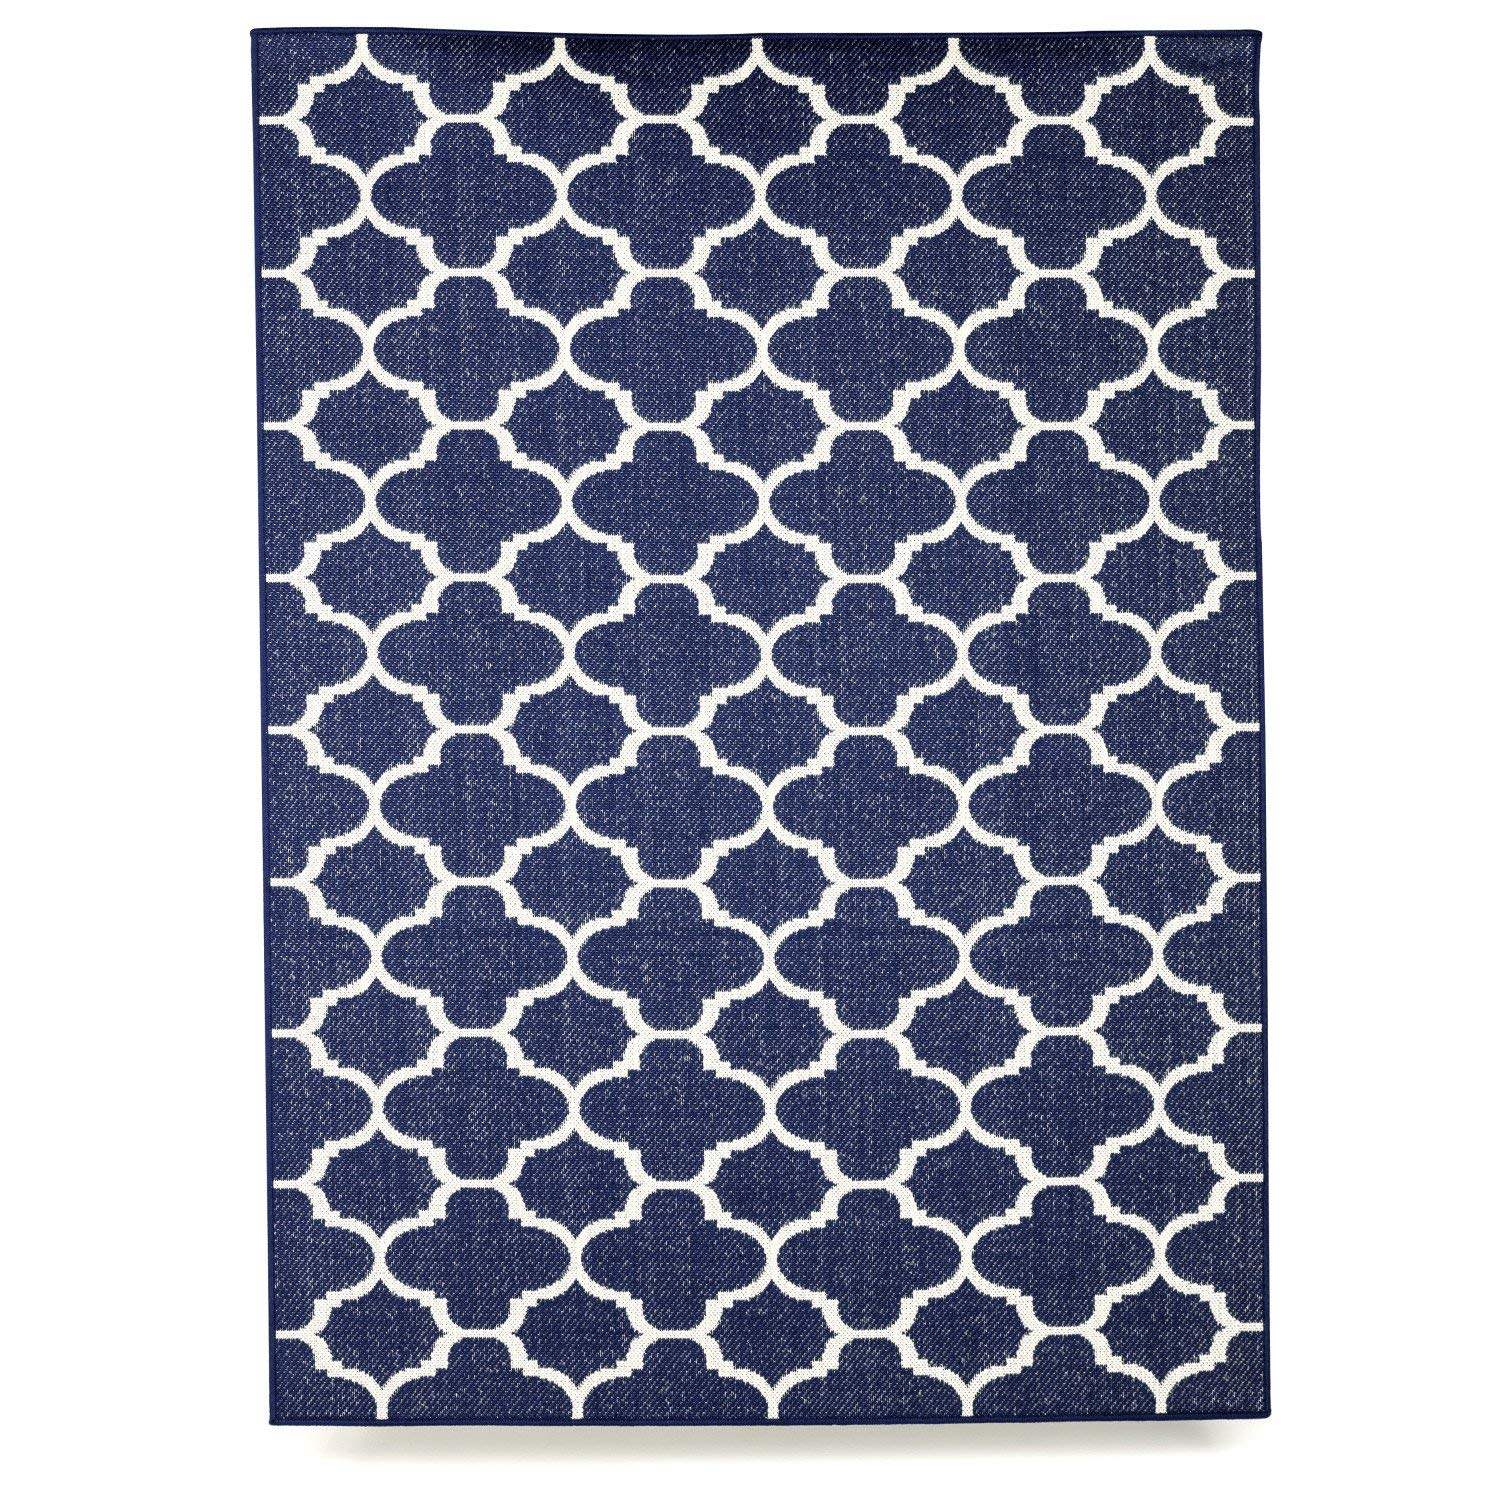 Cheap 8 X 10 Outdoor Rug Find 8 X 10 Outdoor Rug Deals On Line At